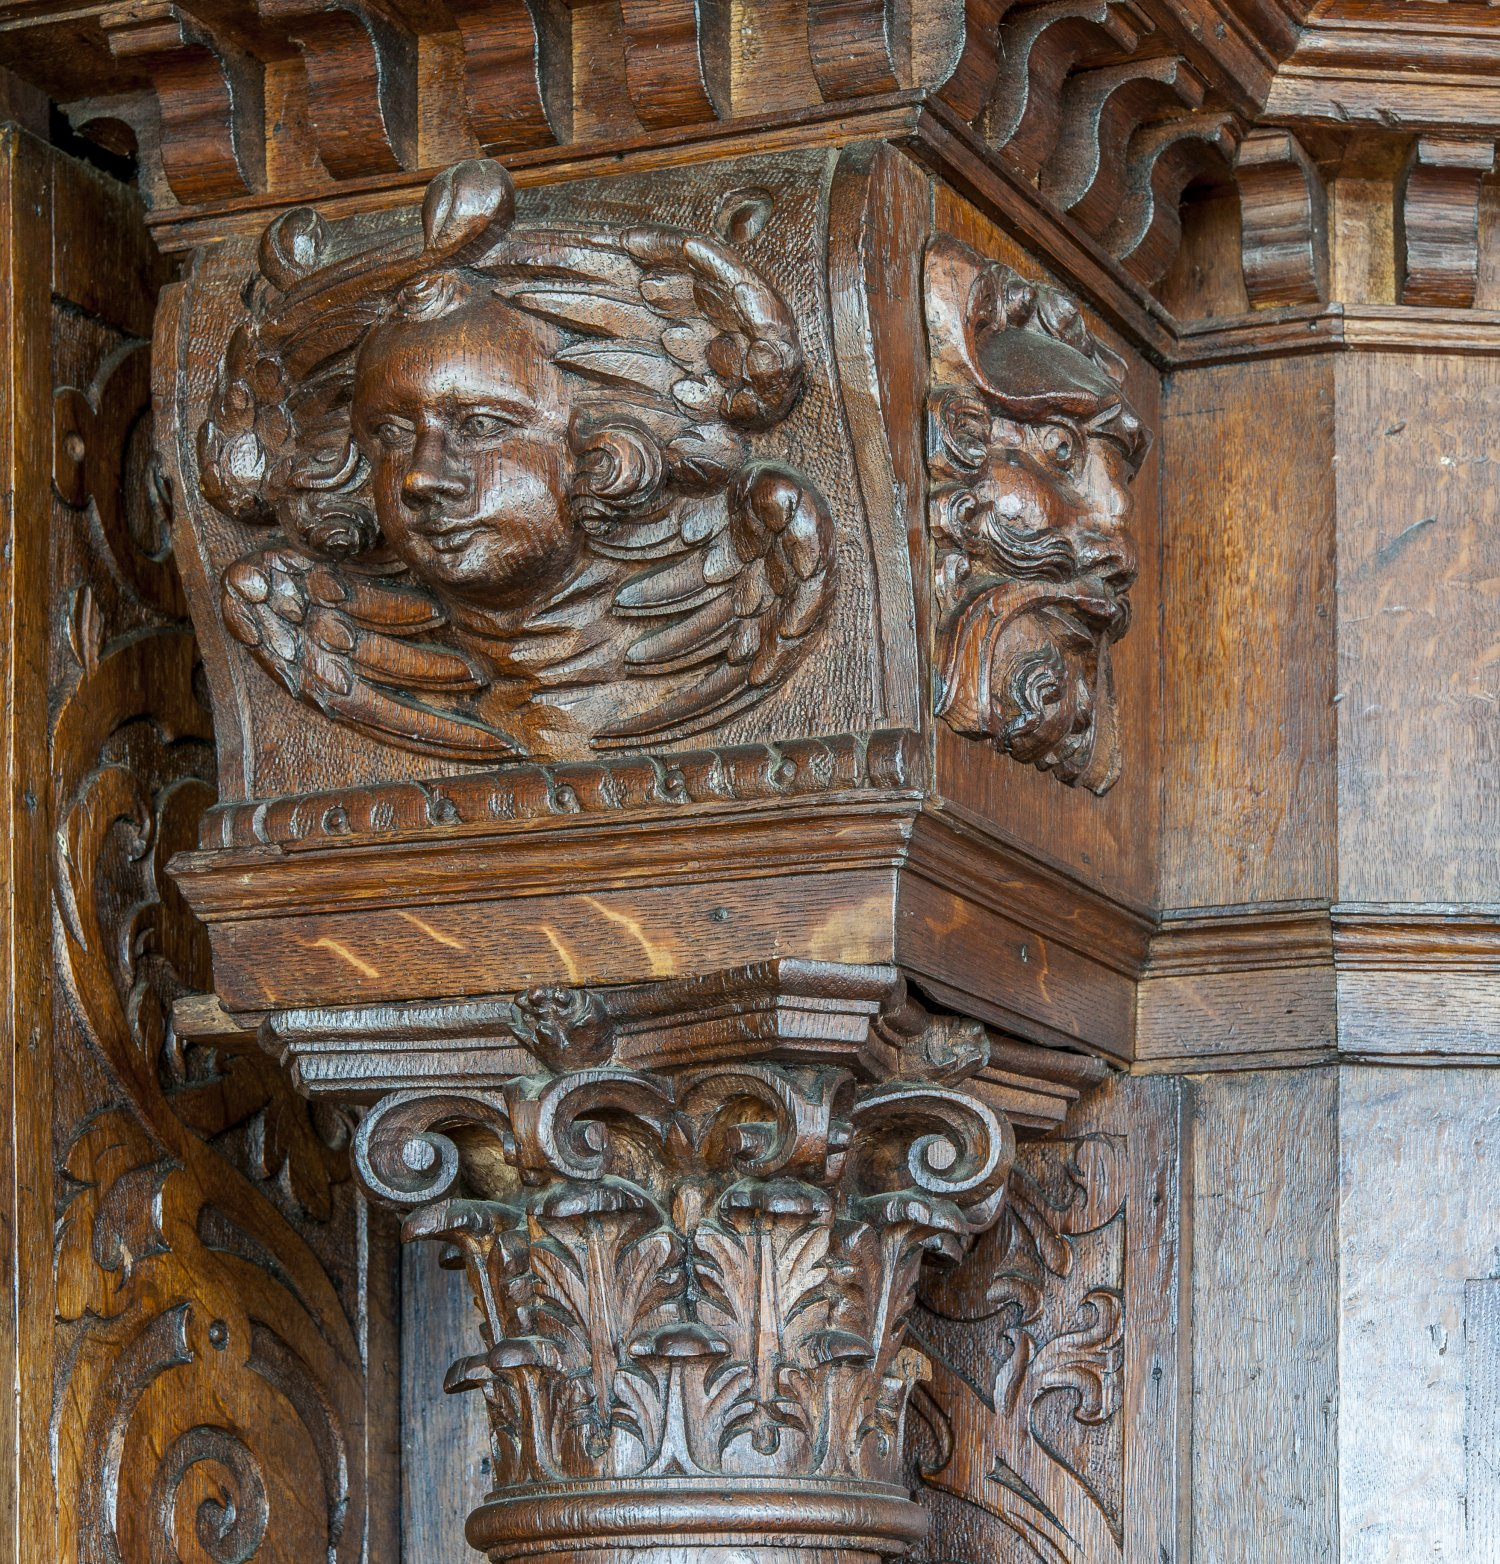 Restoration of original late C16th oak joinery